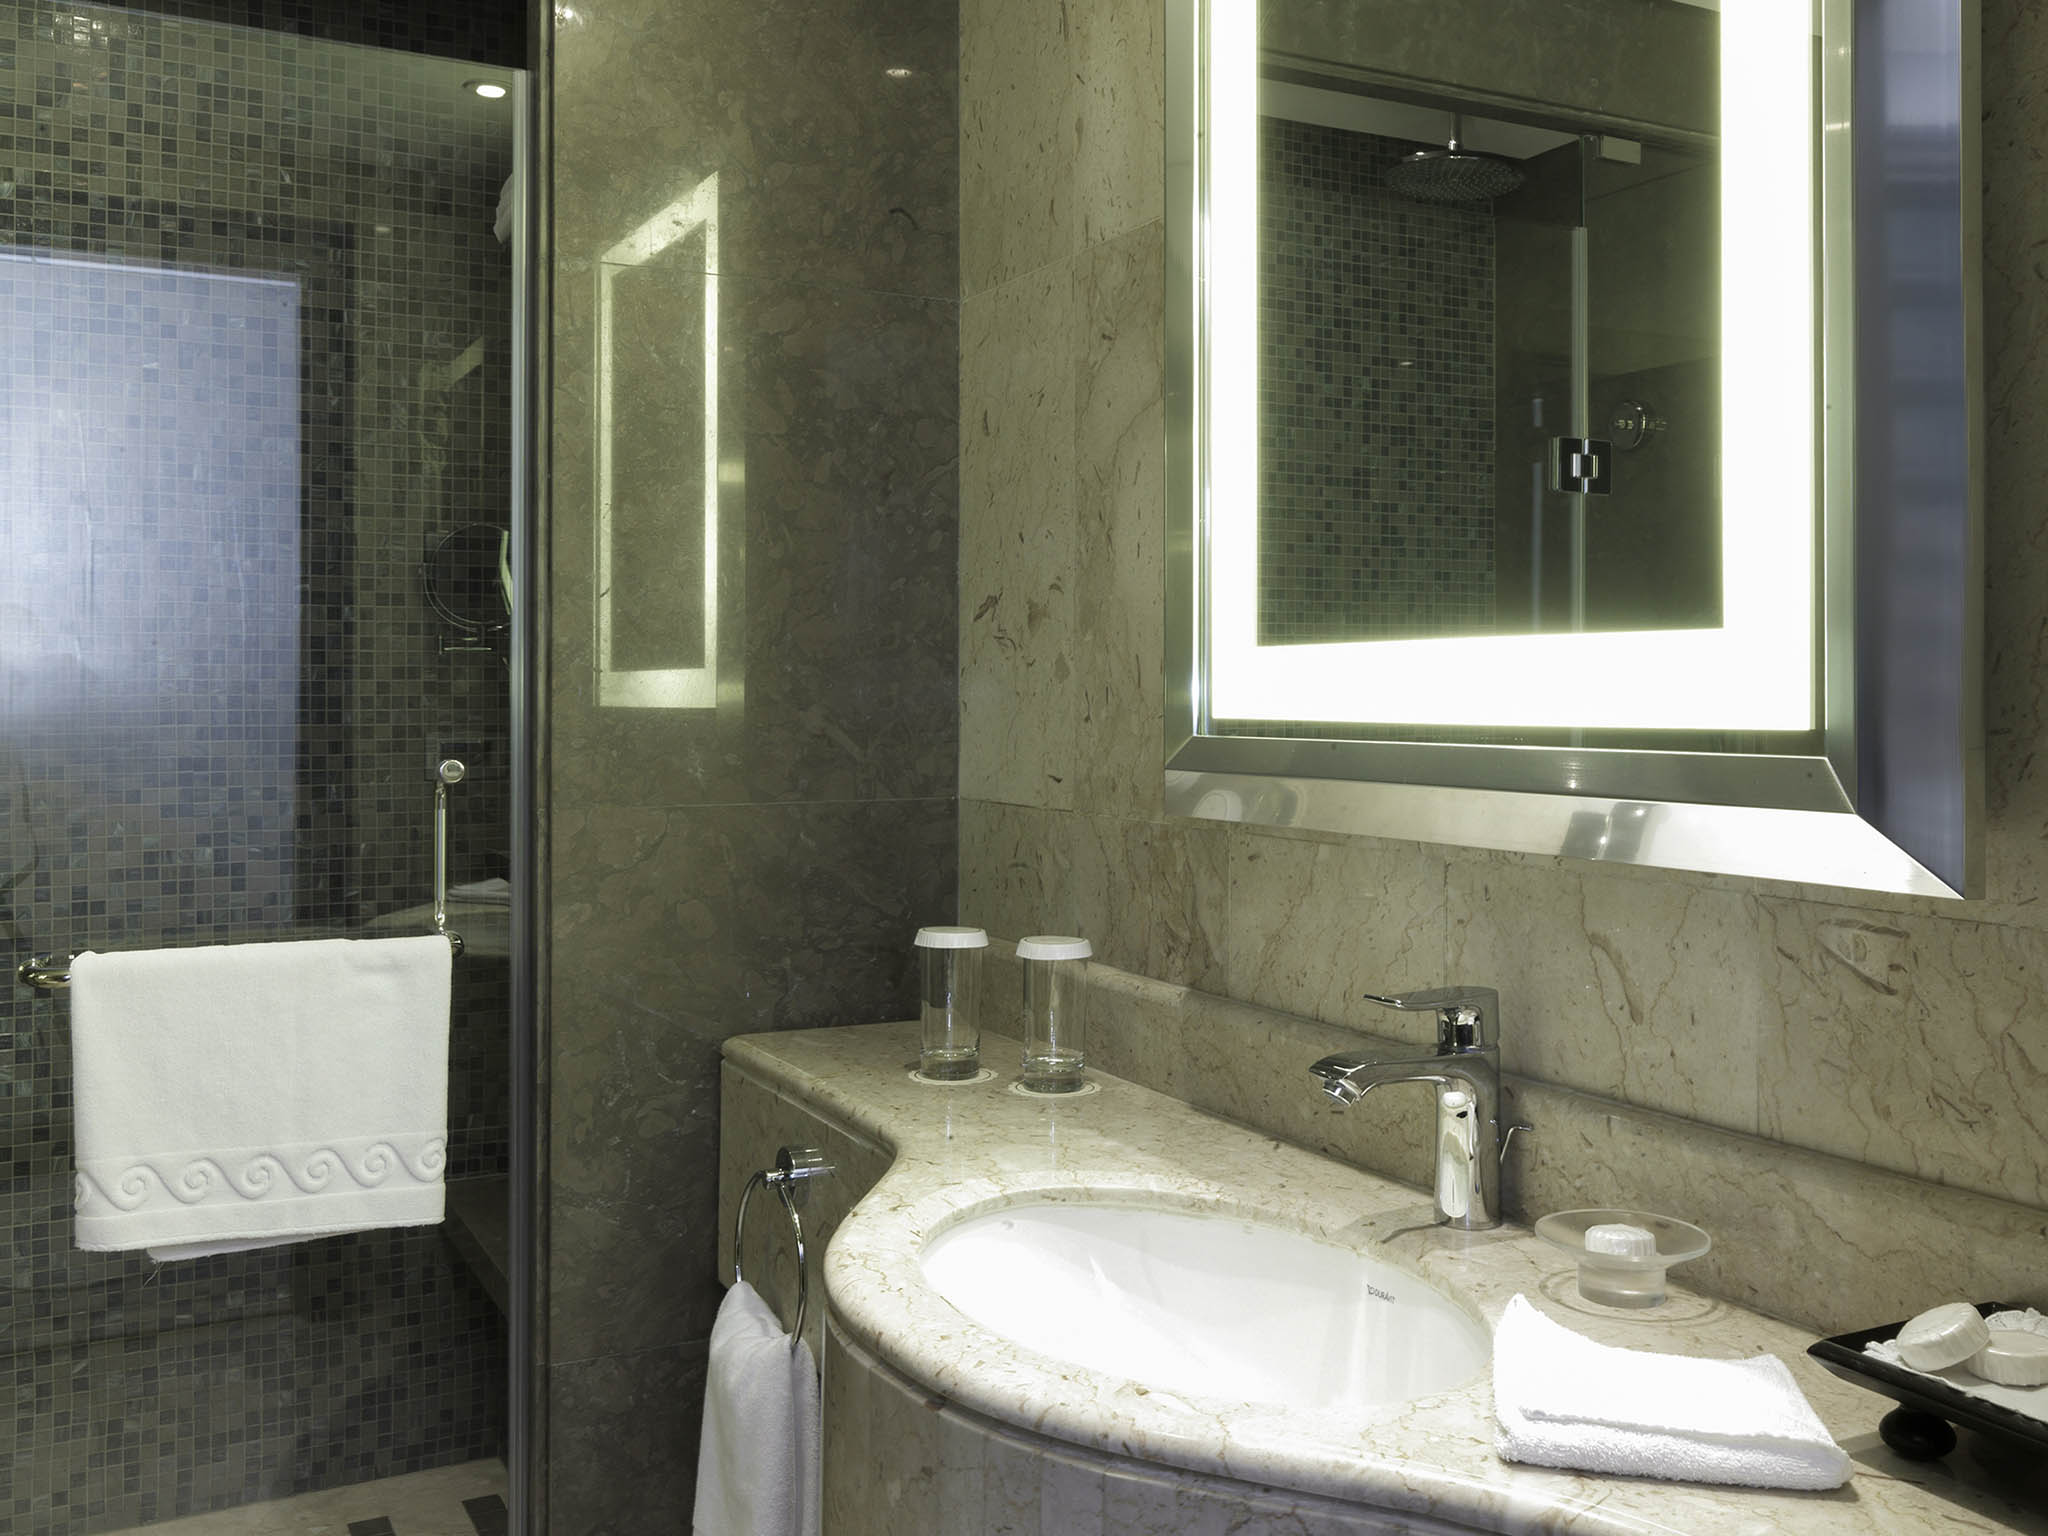 Bathroom lebanon 28 images monoberge byblos up to 40 for Bathroom designs lebanon